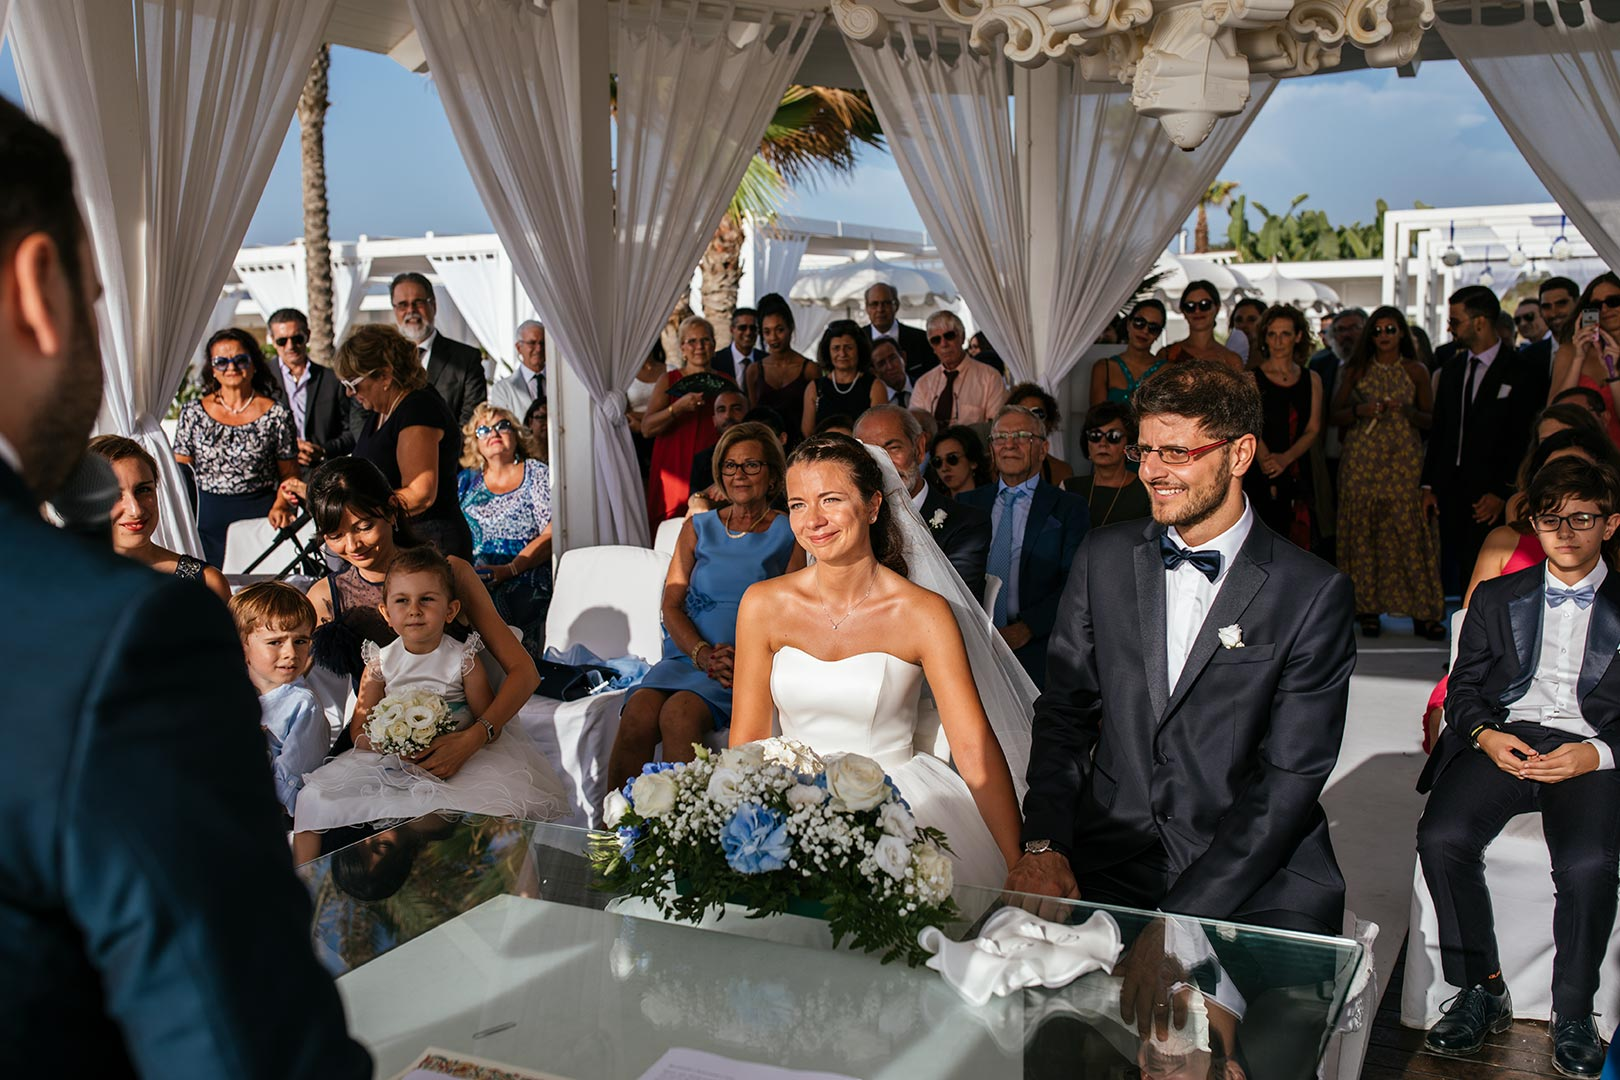 Wedding-at-Bacoli-Simone-Roberta